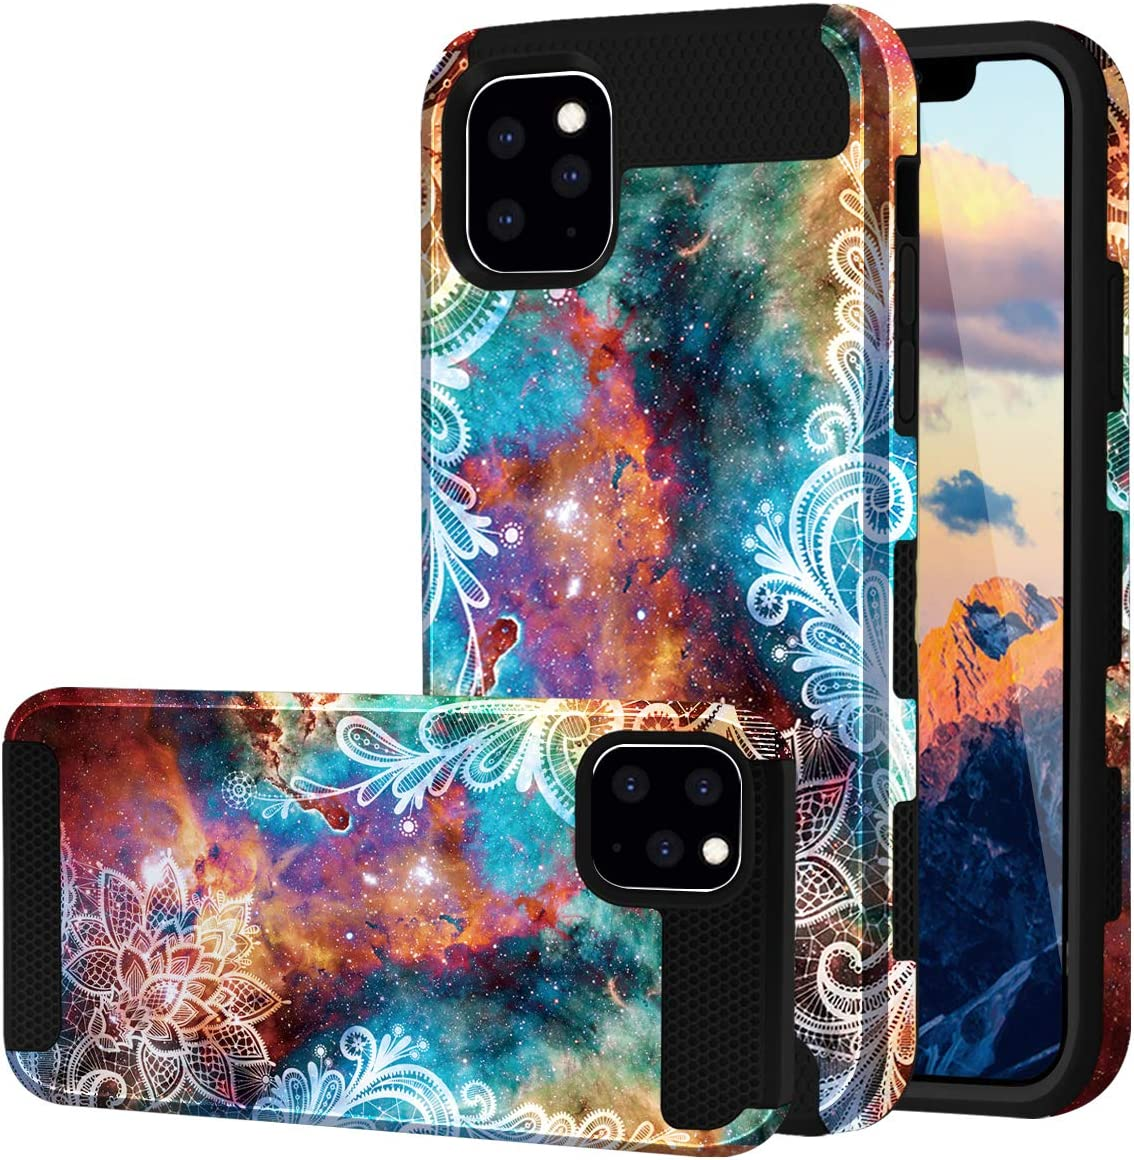 Fingic iPhone 11 Pro Max Case, Floral Design Dual Layer Hybrid Hard PC Soft Rubber Bumper Anti-Scratch Shockproof Protective Case Cover for Apple iPhone 11 Pro Max 6.5 inch 2019, Mandala